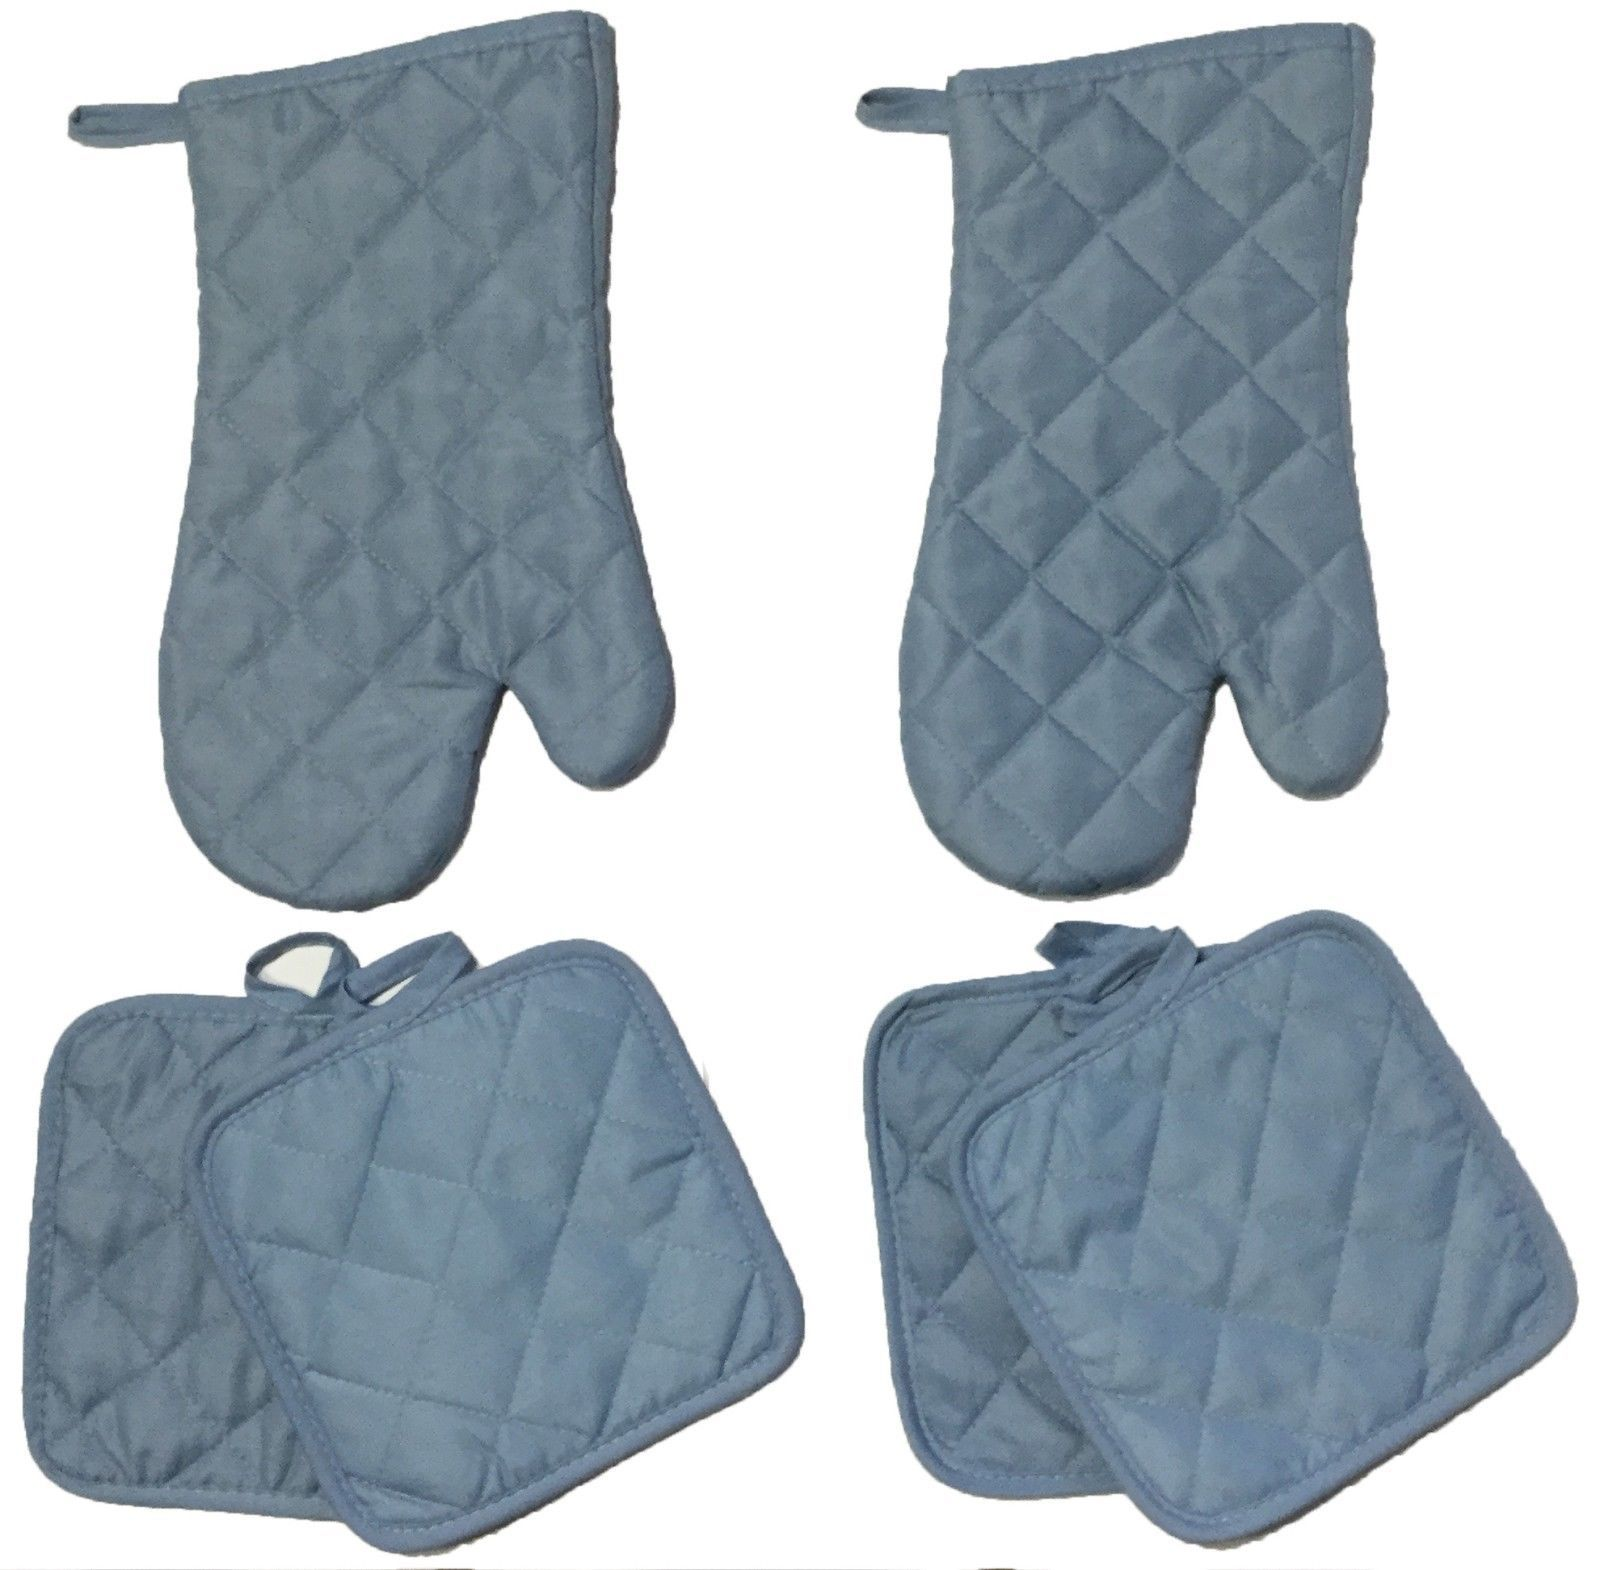 Set of 6, Solid Quilted Kitchen Set Includes 4 Pot Holder, 2 Oven Mitt.